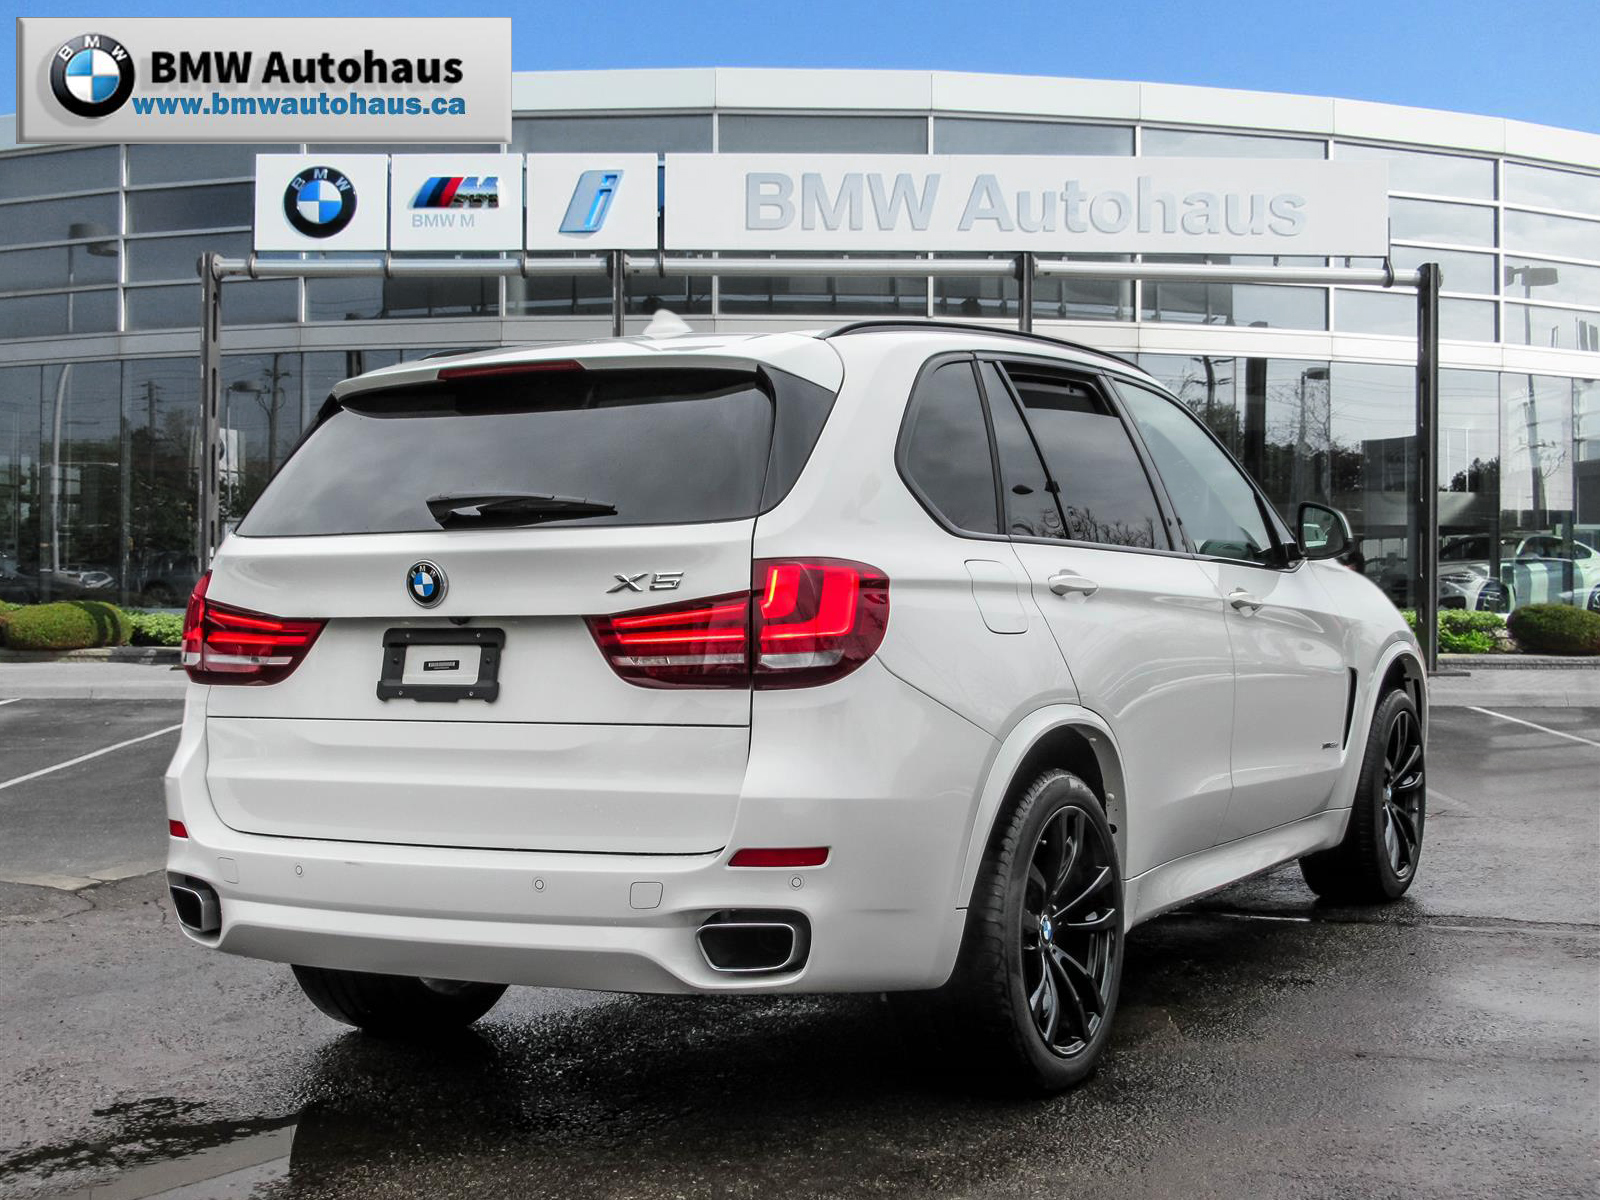 Used 2017 BMW X5 in Thornhill,ON